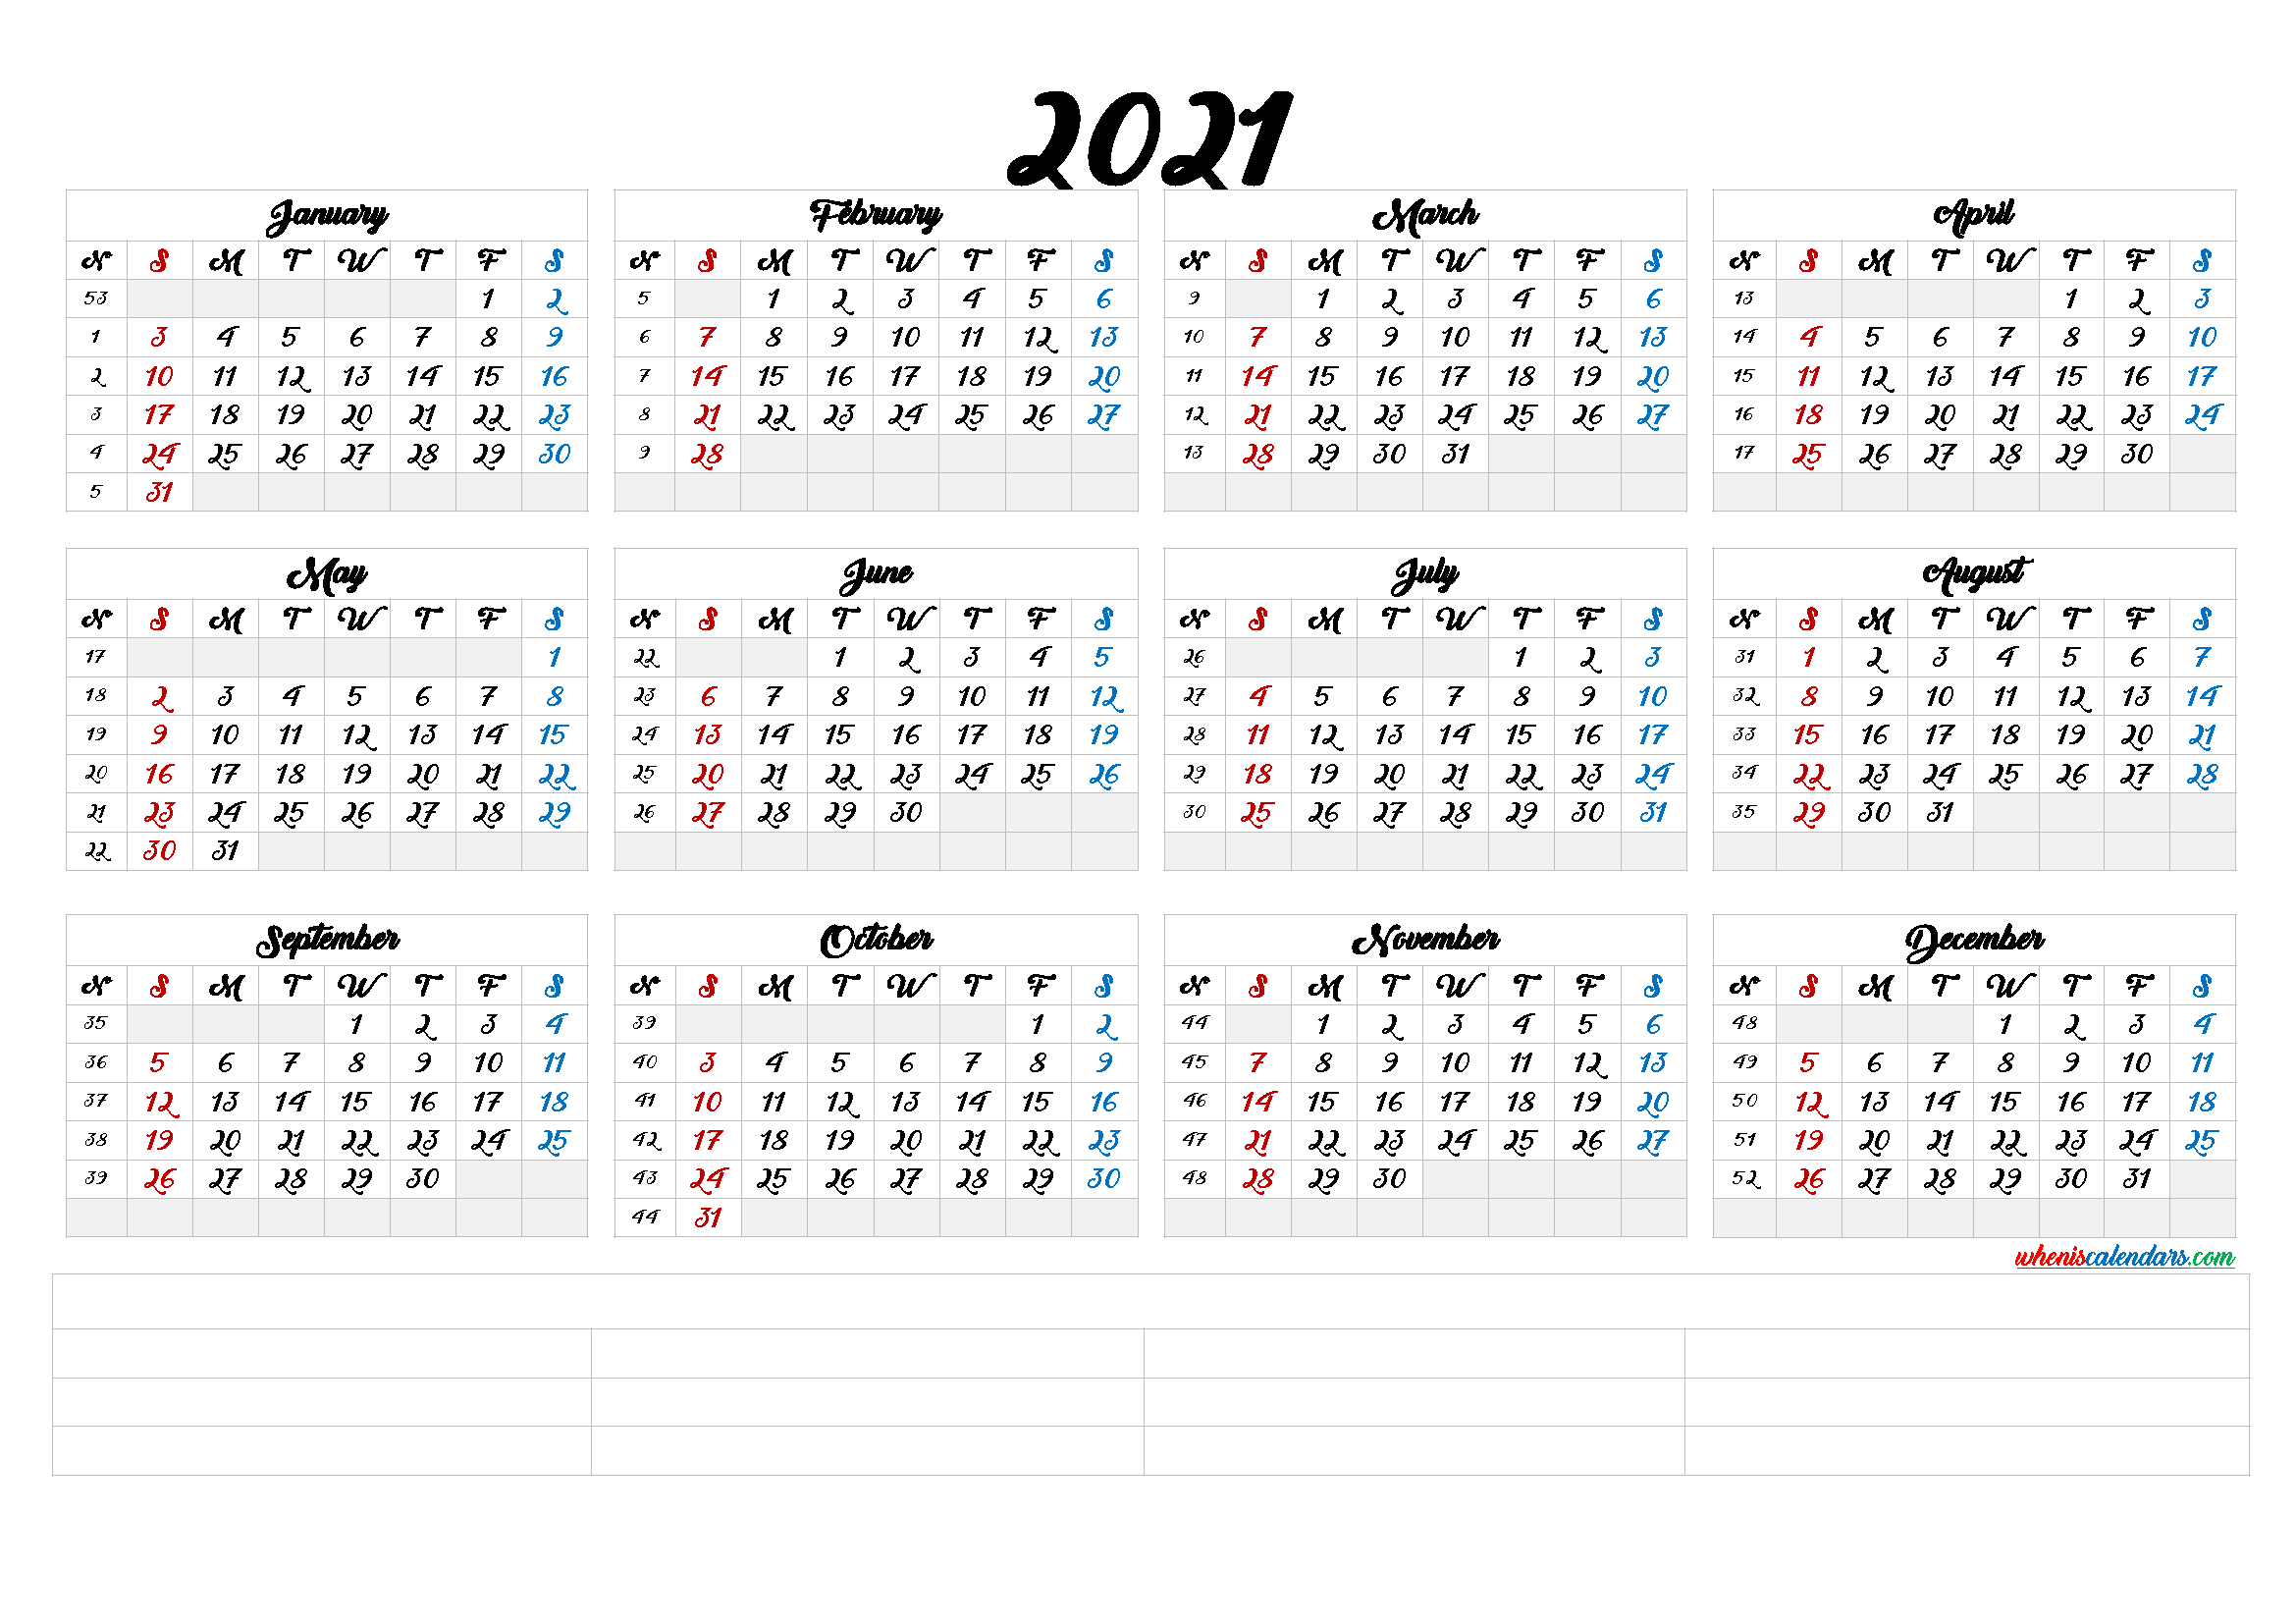 Free Printable 2021 Calendarmonth (6 Templates) intended for 2021 Pocket Planner: Yearly Calendar